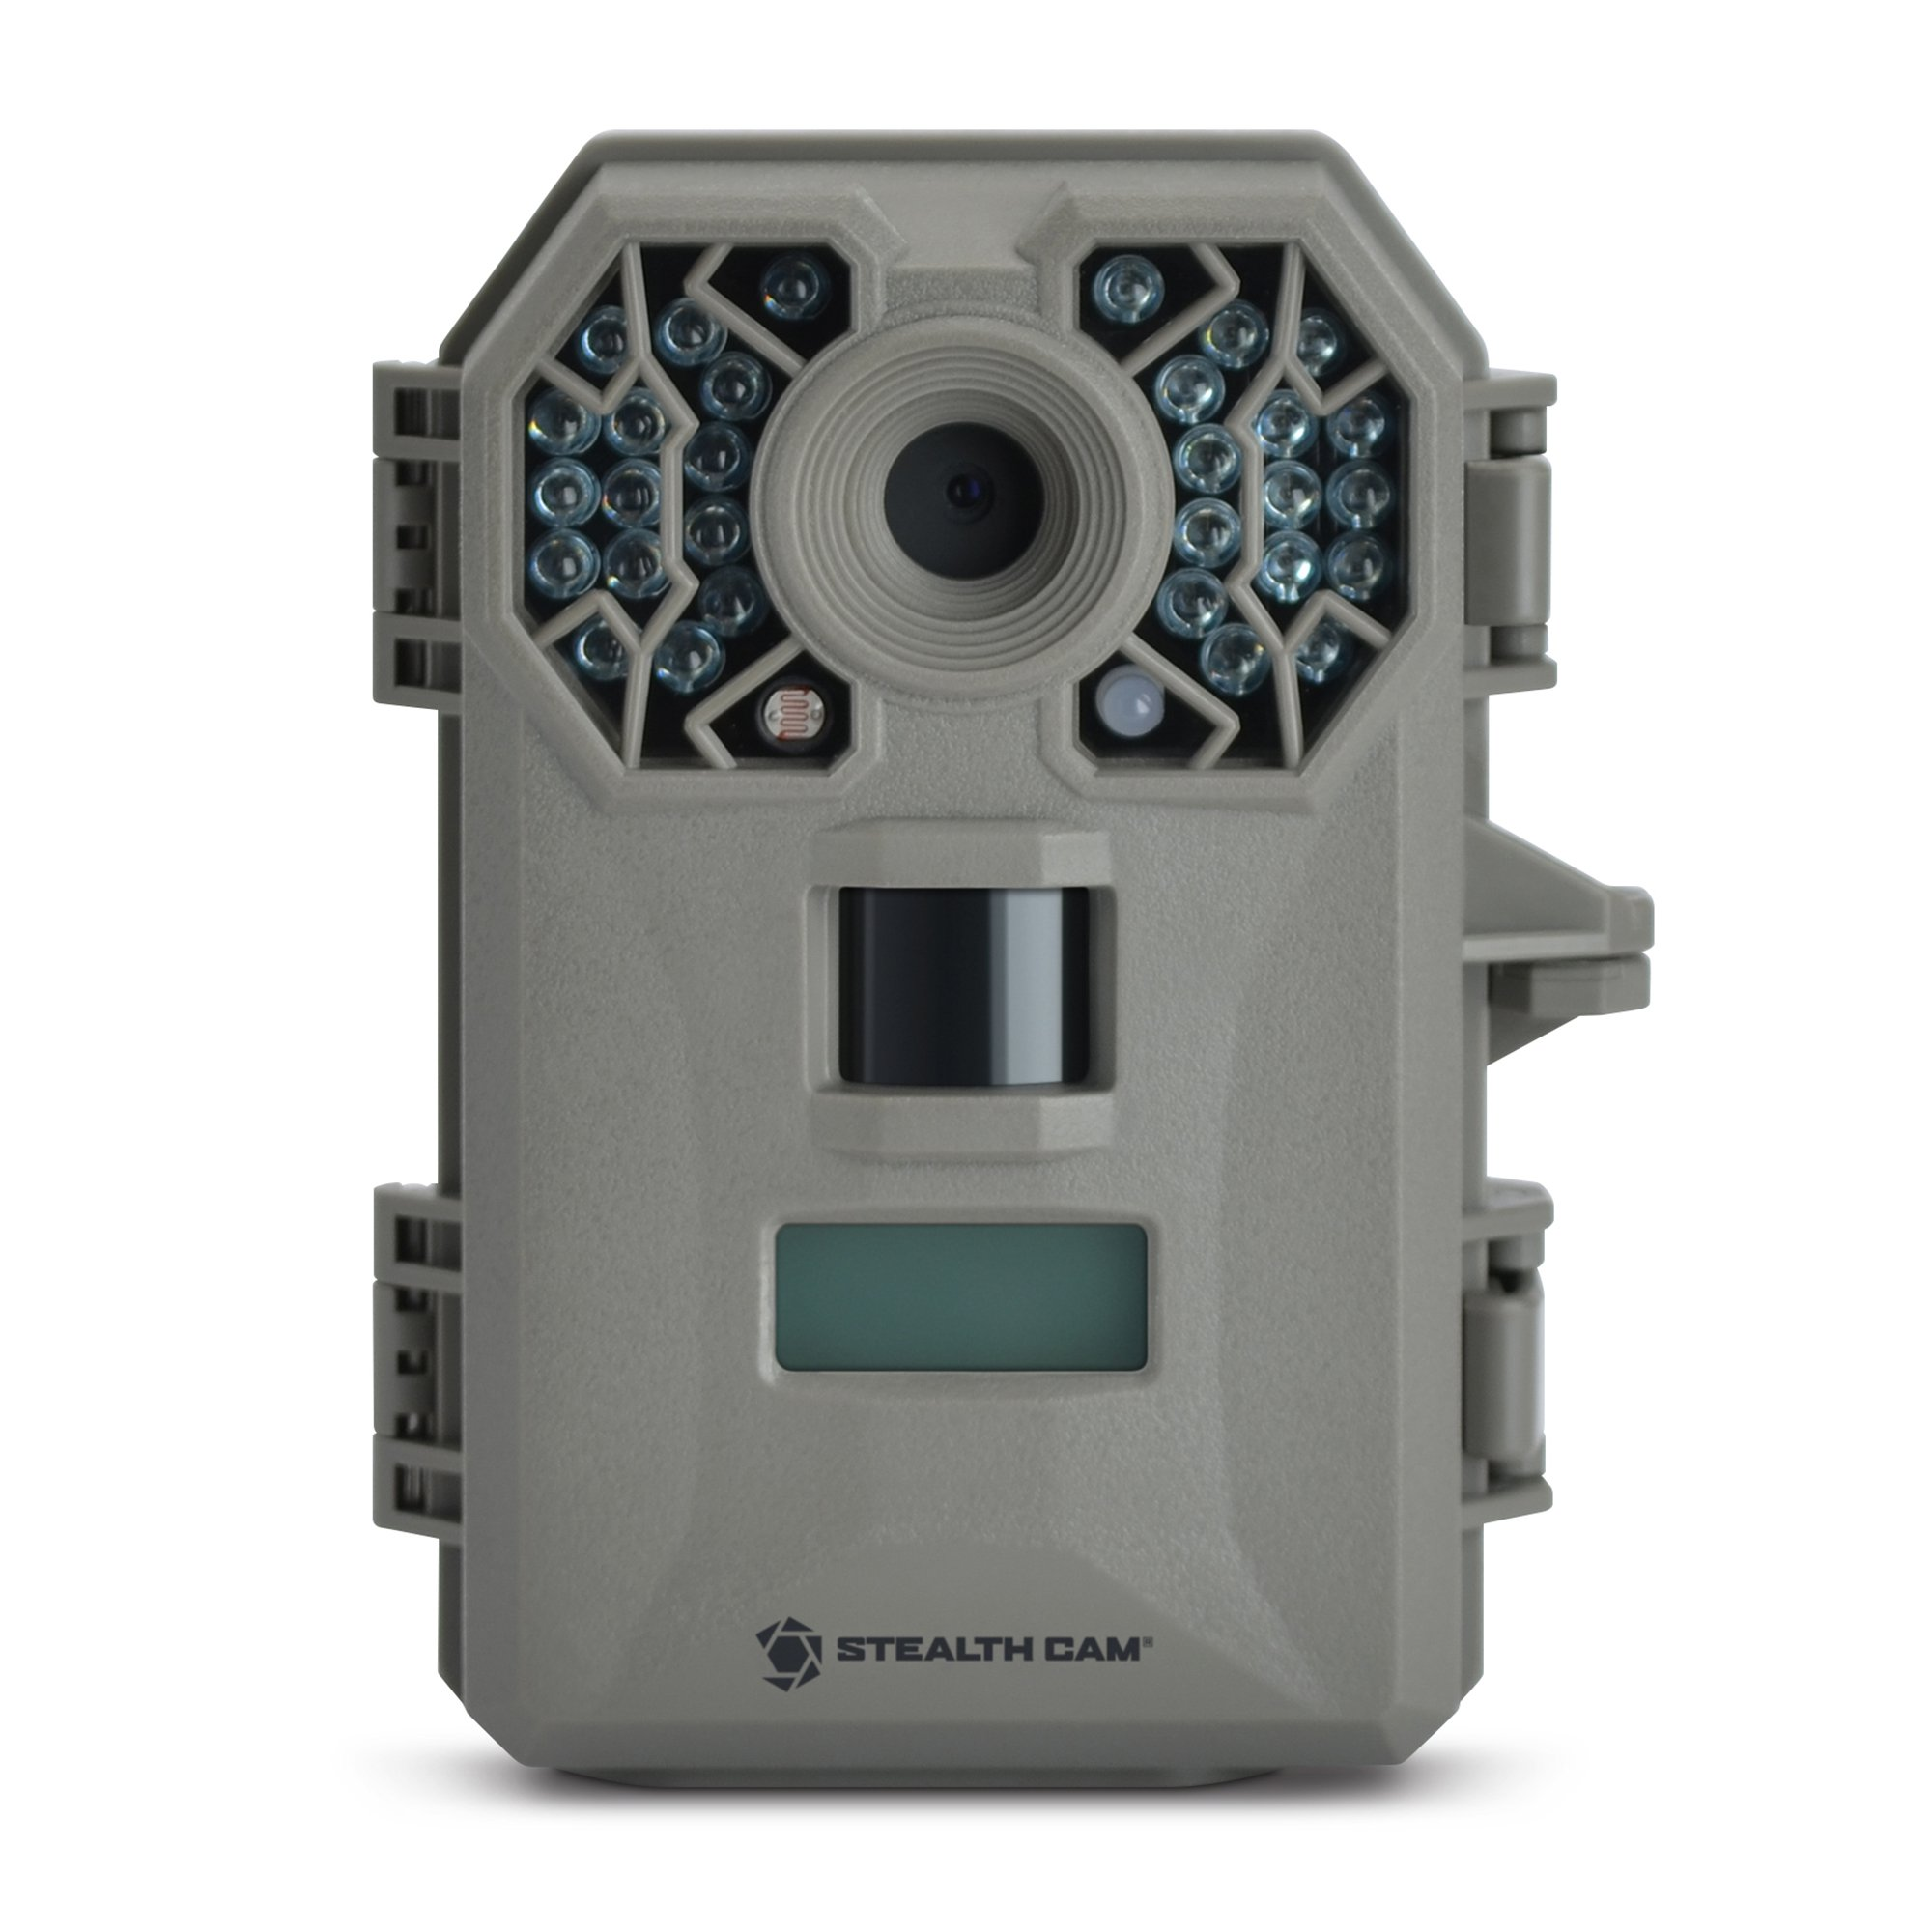 Stealth Cam 8MP Infrared Hunting Scouting Game Trail Camera w/ HD Video | G30